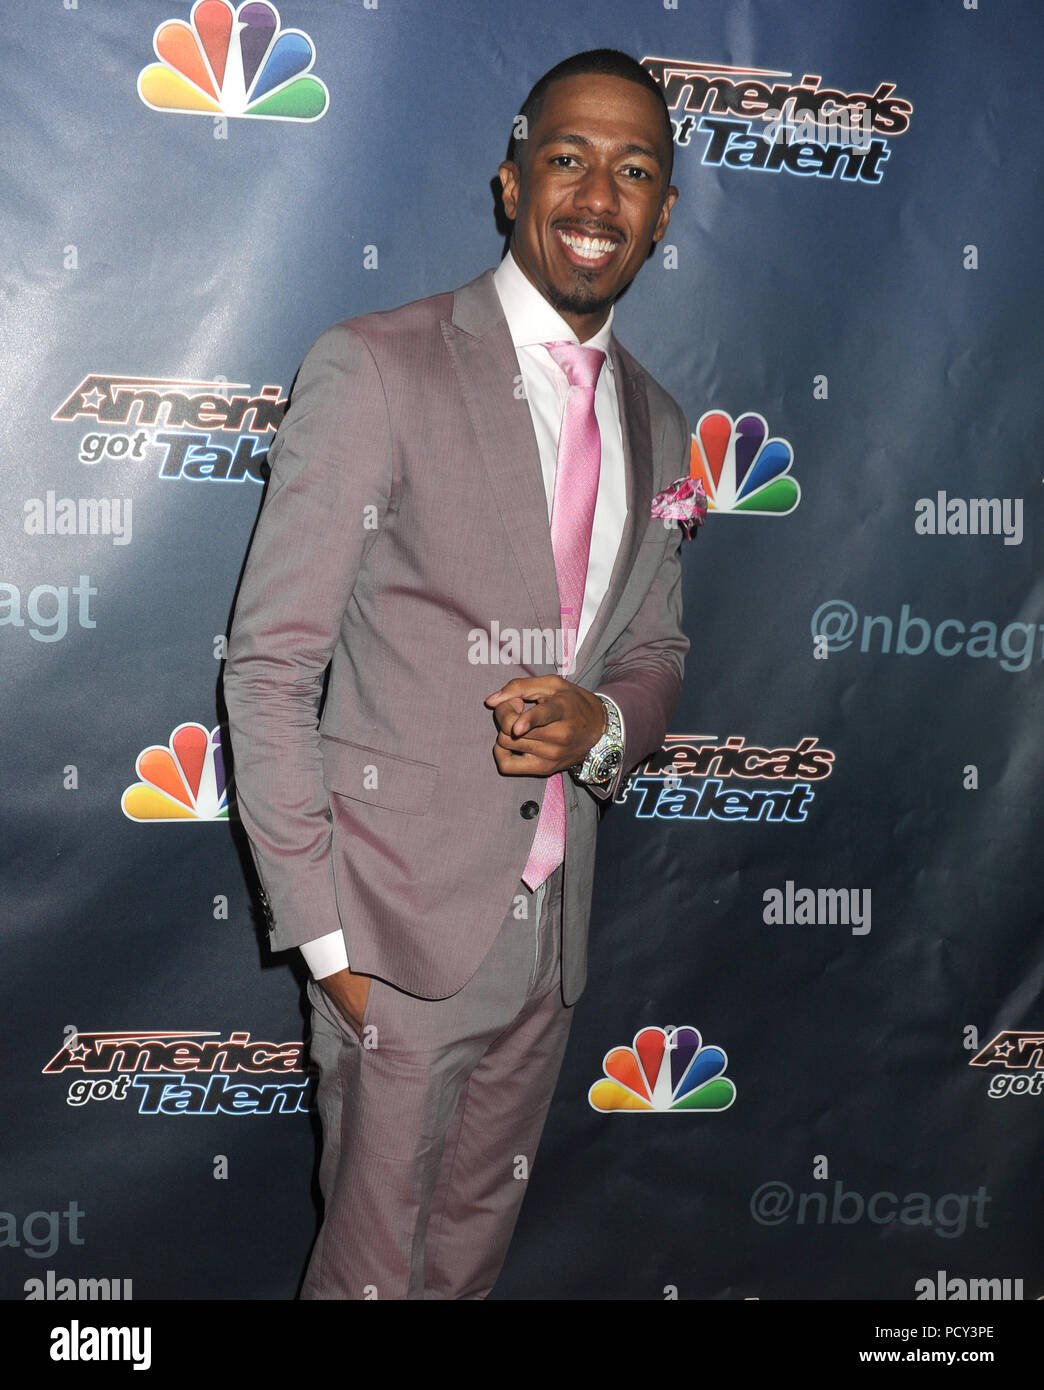 NEW YORK, NY - AUGUST 19: Nick Cannon attends 'America's Got Talent' post-show red carpet event at Radio City Music Hall on August 19, 2015 in New York City.   People:  Nick Cannon Stock Photo